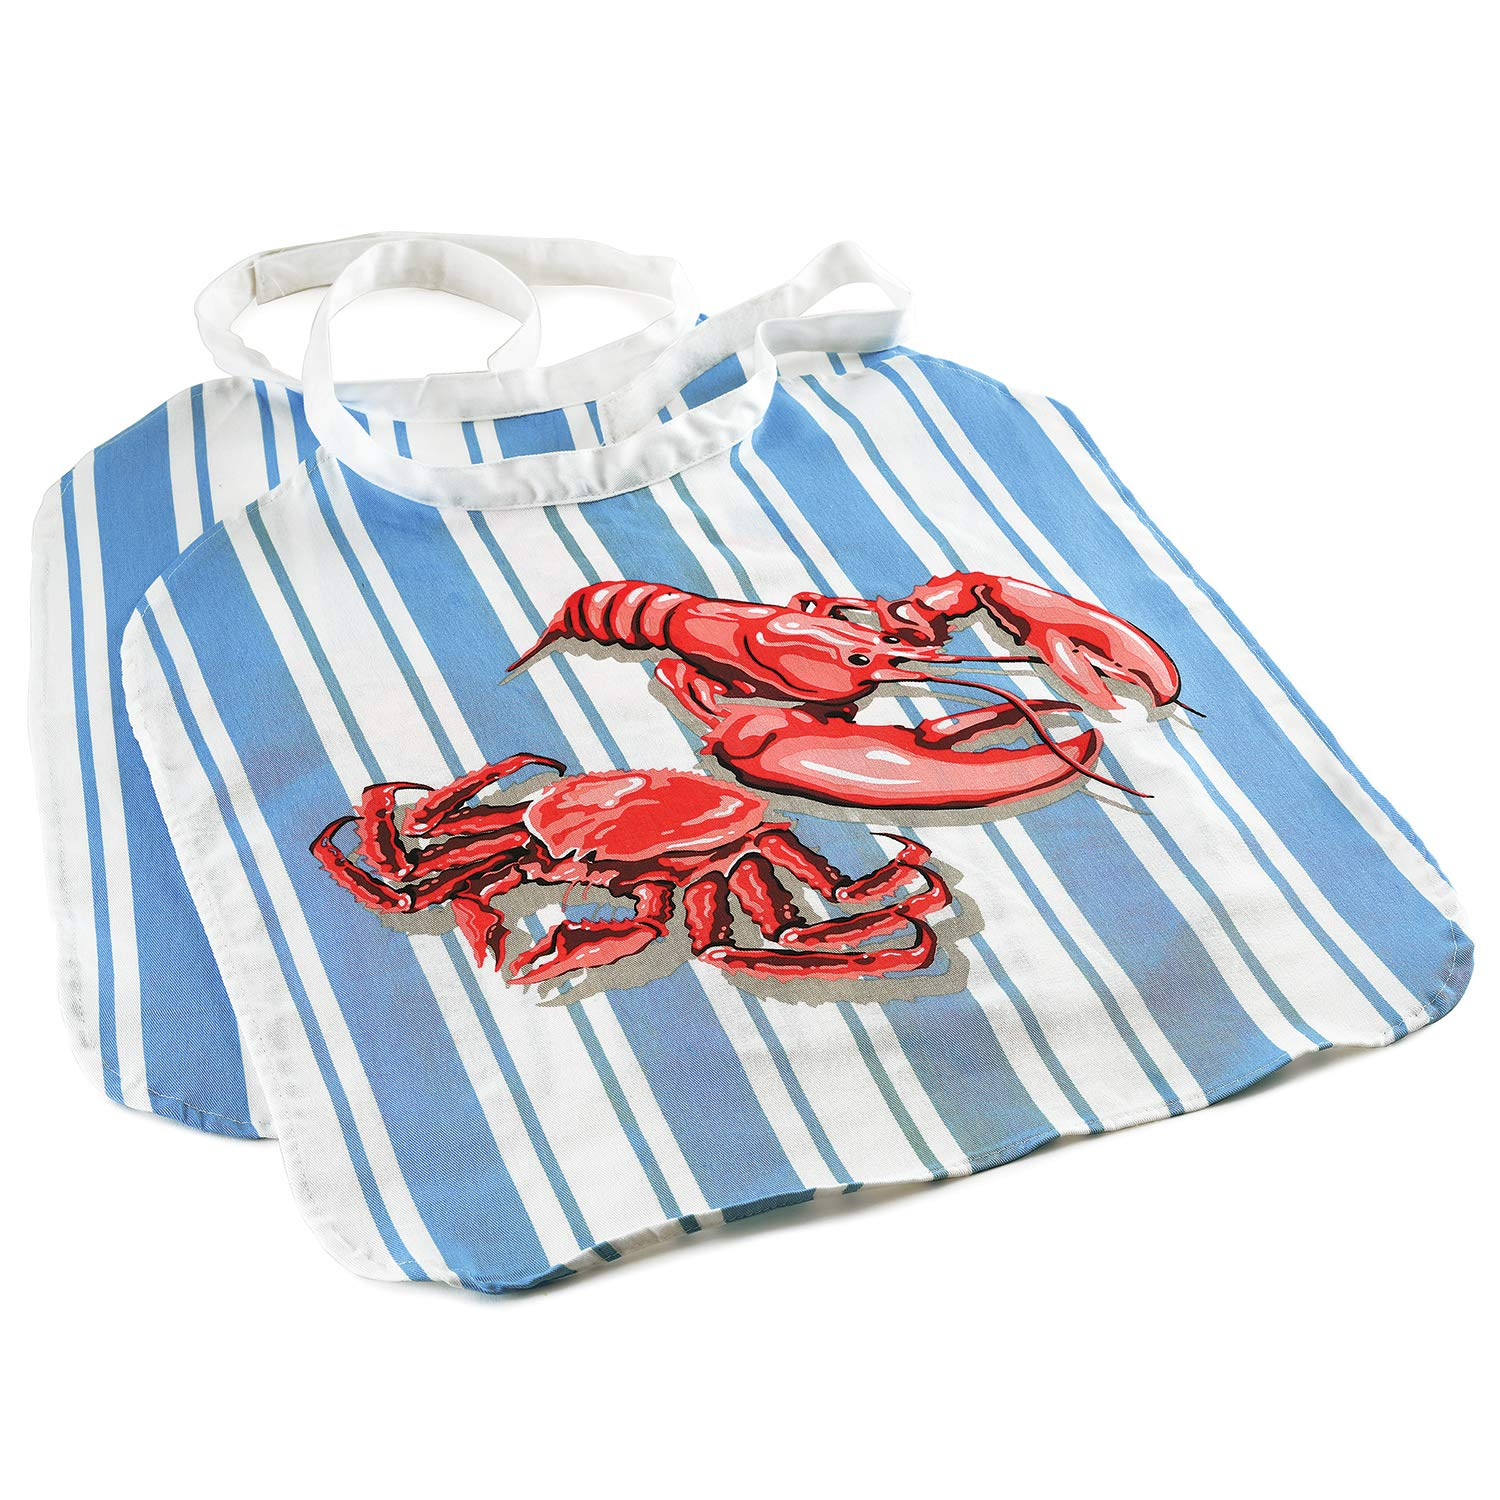 Norpro 6502 Seafood Bib, One-Size, Blue/Red by Norpro